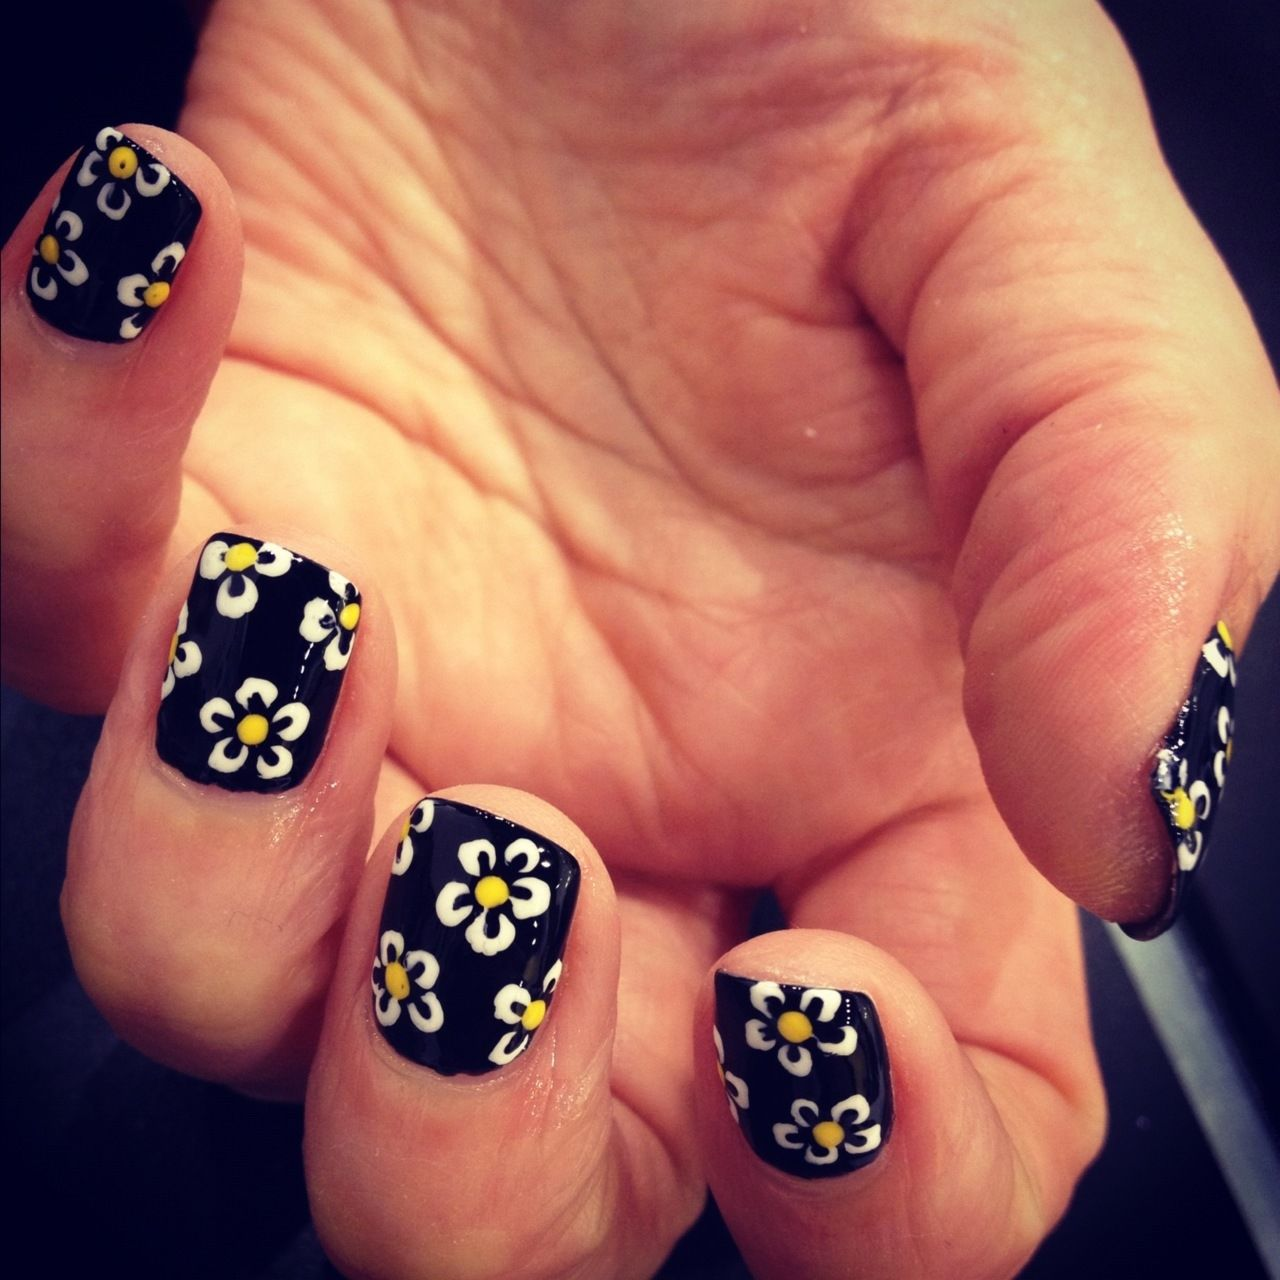 Daisy Black Nails Pictures, Photos, and Images for Facebook, Tumblr ...